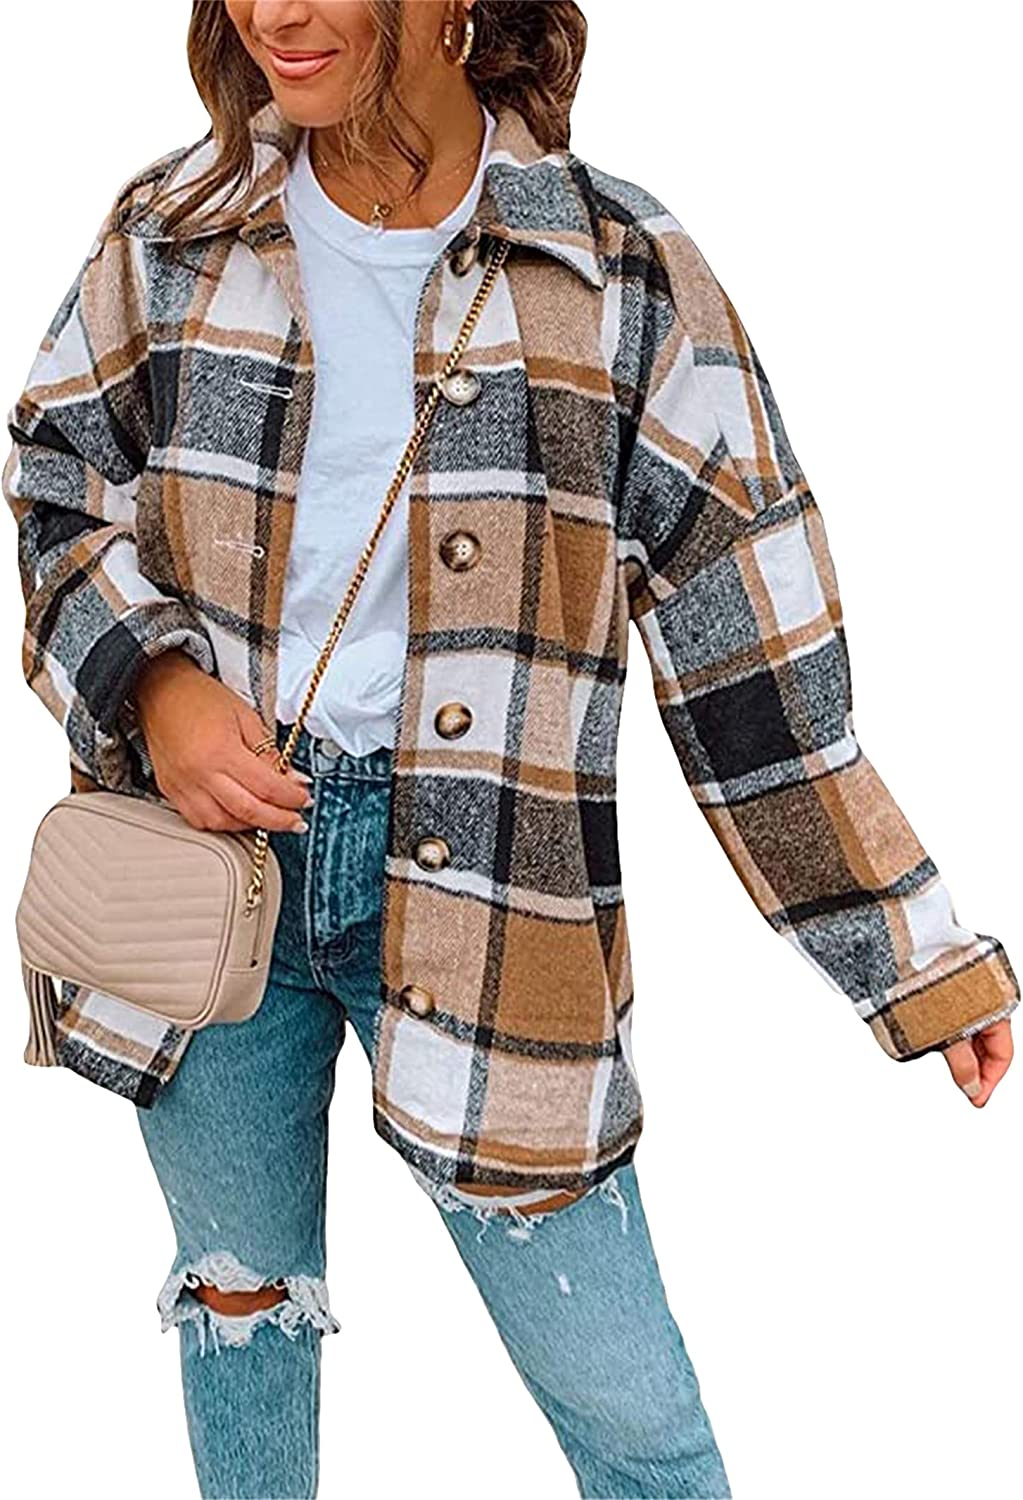 YMING Womens Casual Color Block Plaid Shirt Lapel Button Down Cardigan Long Sleeve Flannel Blouse Tops